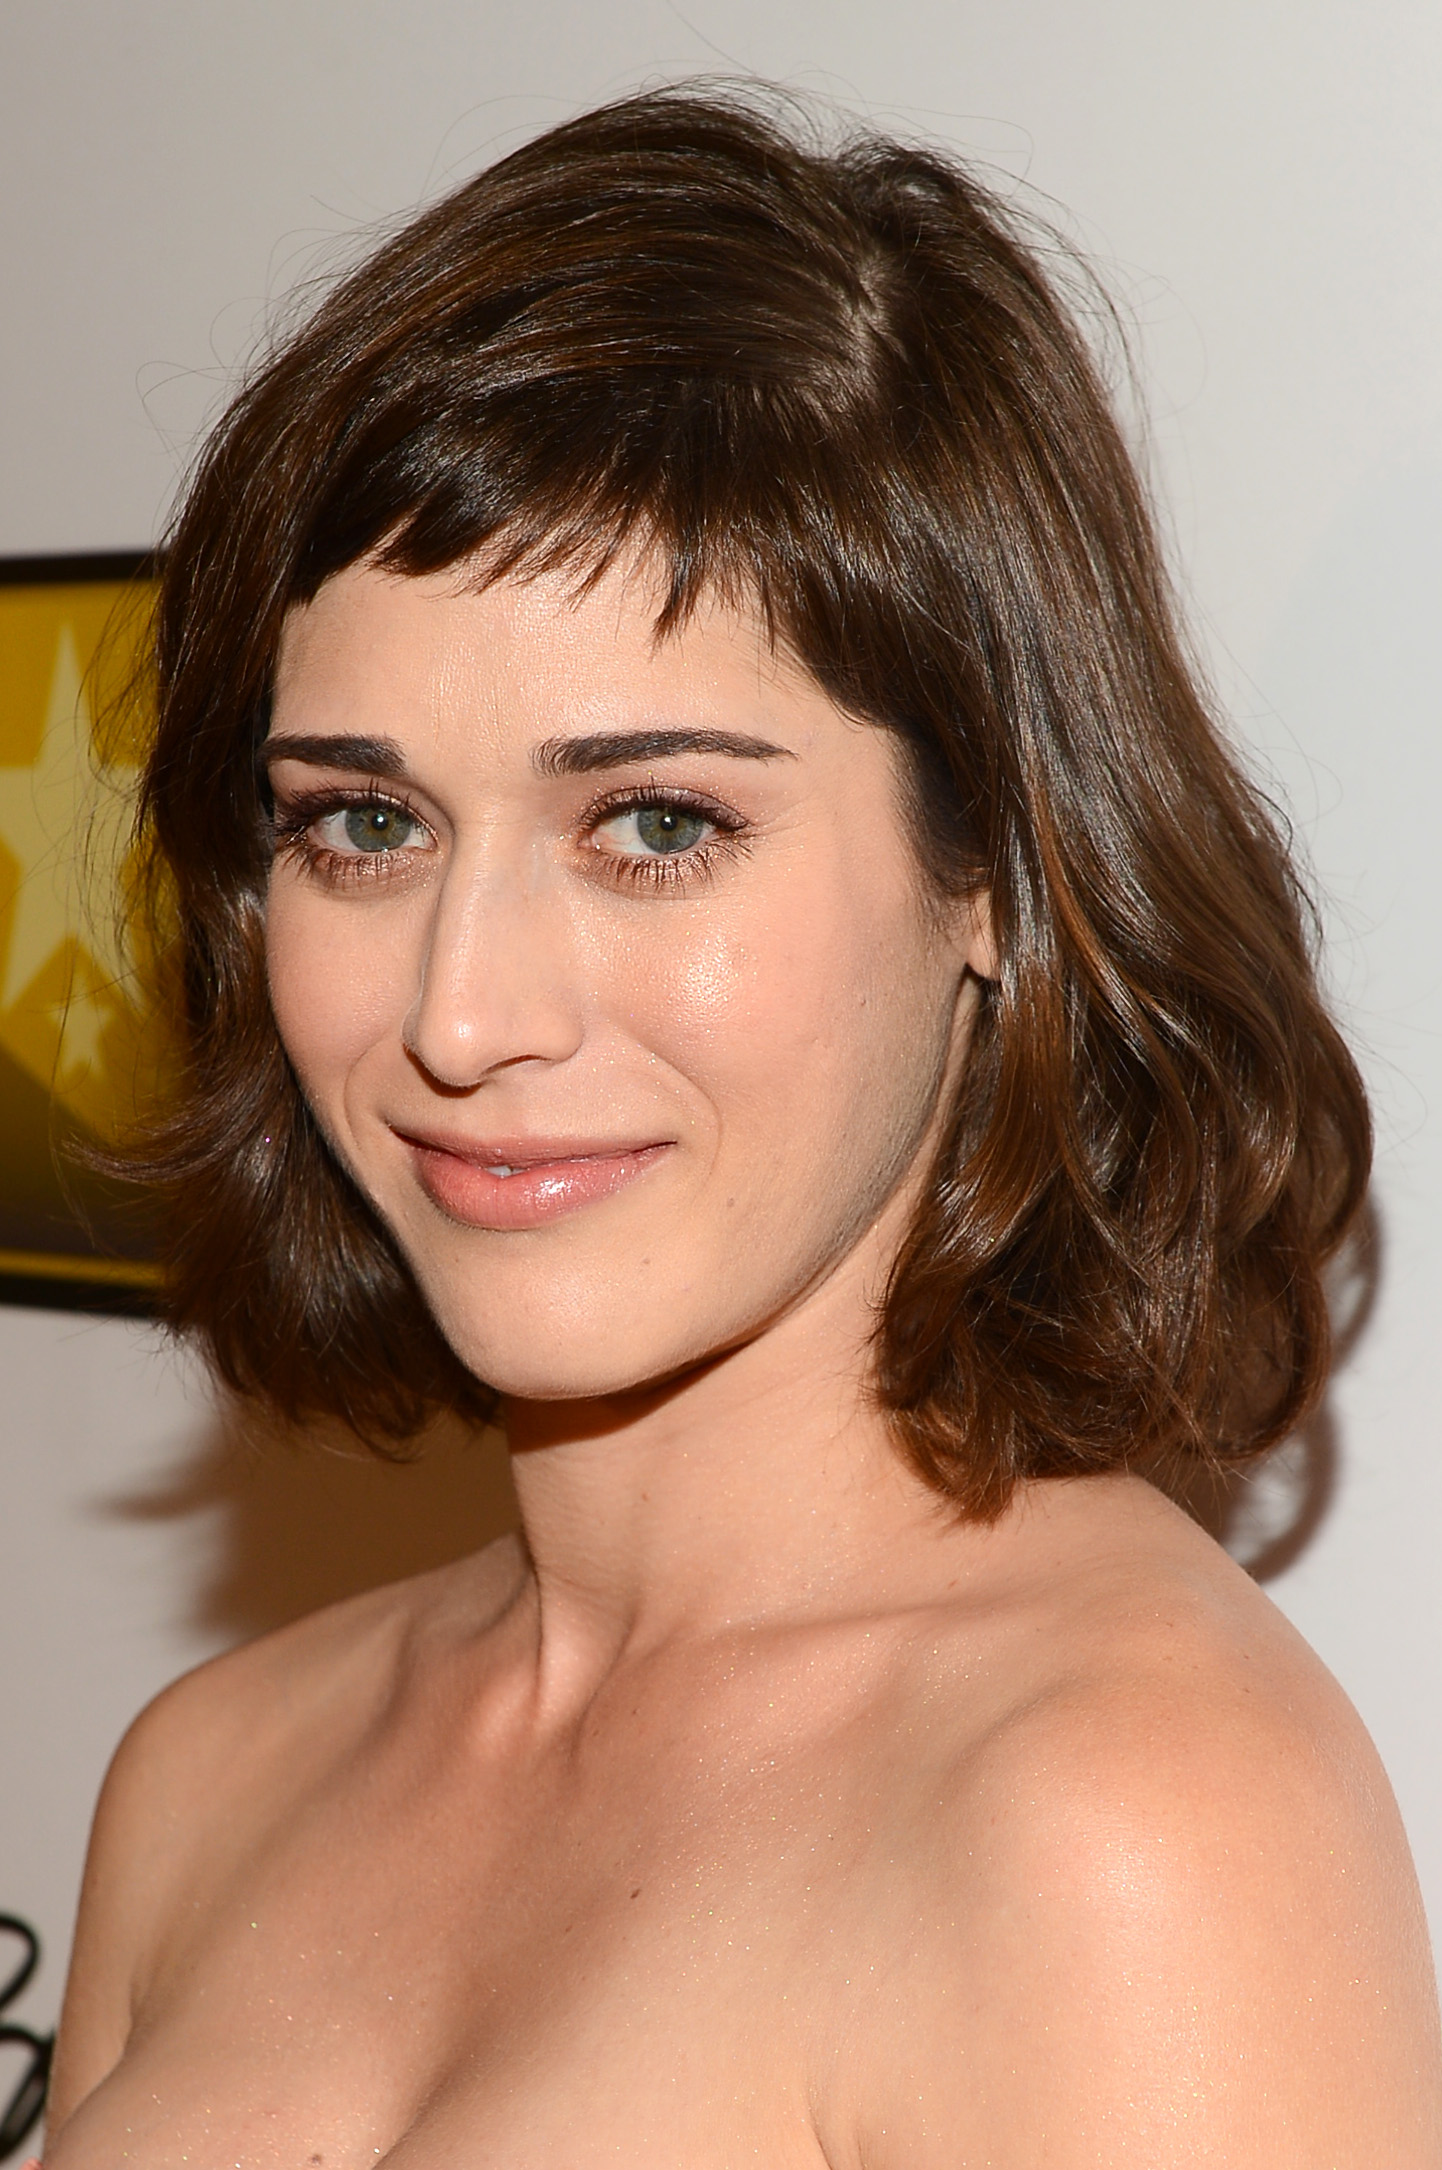 LOS ANGELES, CA - JUNE 10:  Actress Lizzy Caplan arrives at Broadcast Television Journalists Association's third annual Critics' Choice Television Awards at The Beverly Hilton Hotel on June 10, 2013 in Los Angeles, California.  (Photo by Mark Davis/Getty Images for CCTA)